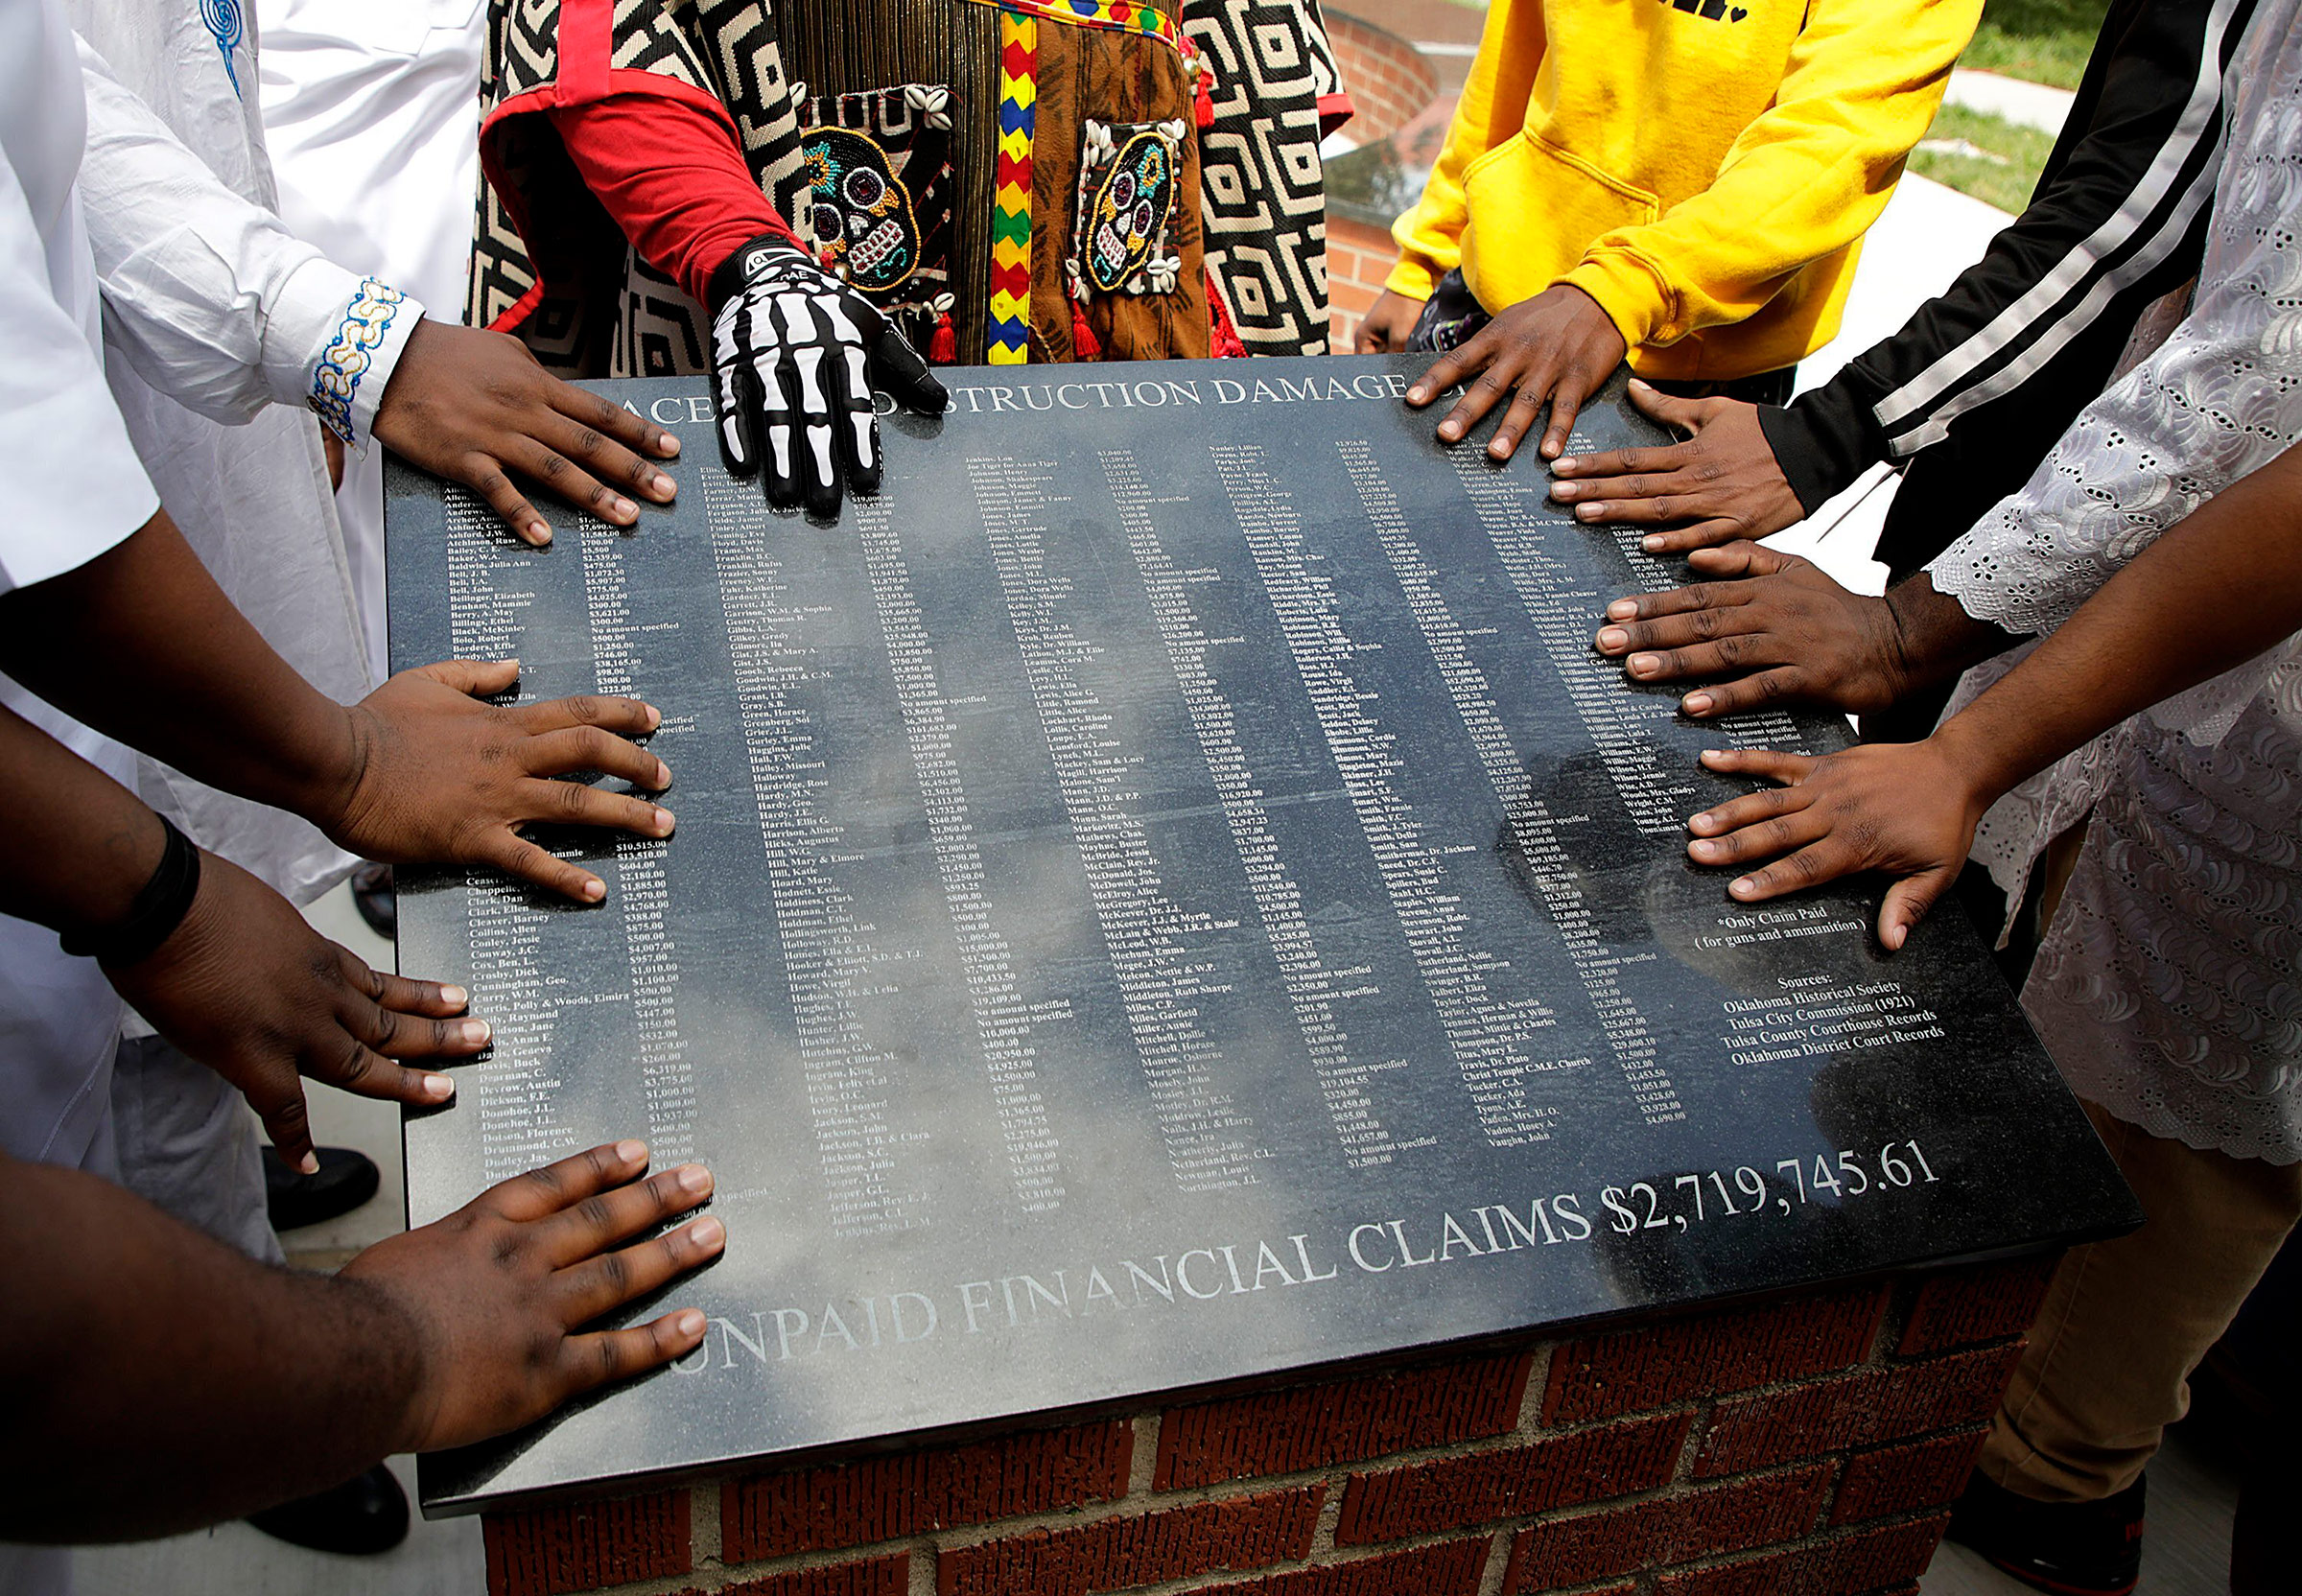 Members of the African Ancestral Society touch the 1921 Black Wall Street Memorial during the Black Wall Street Memorial March in Tulsa on May 28, 2021.